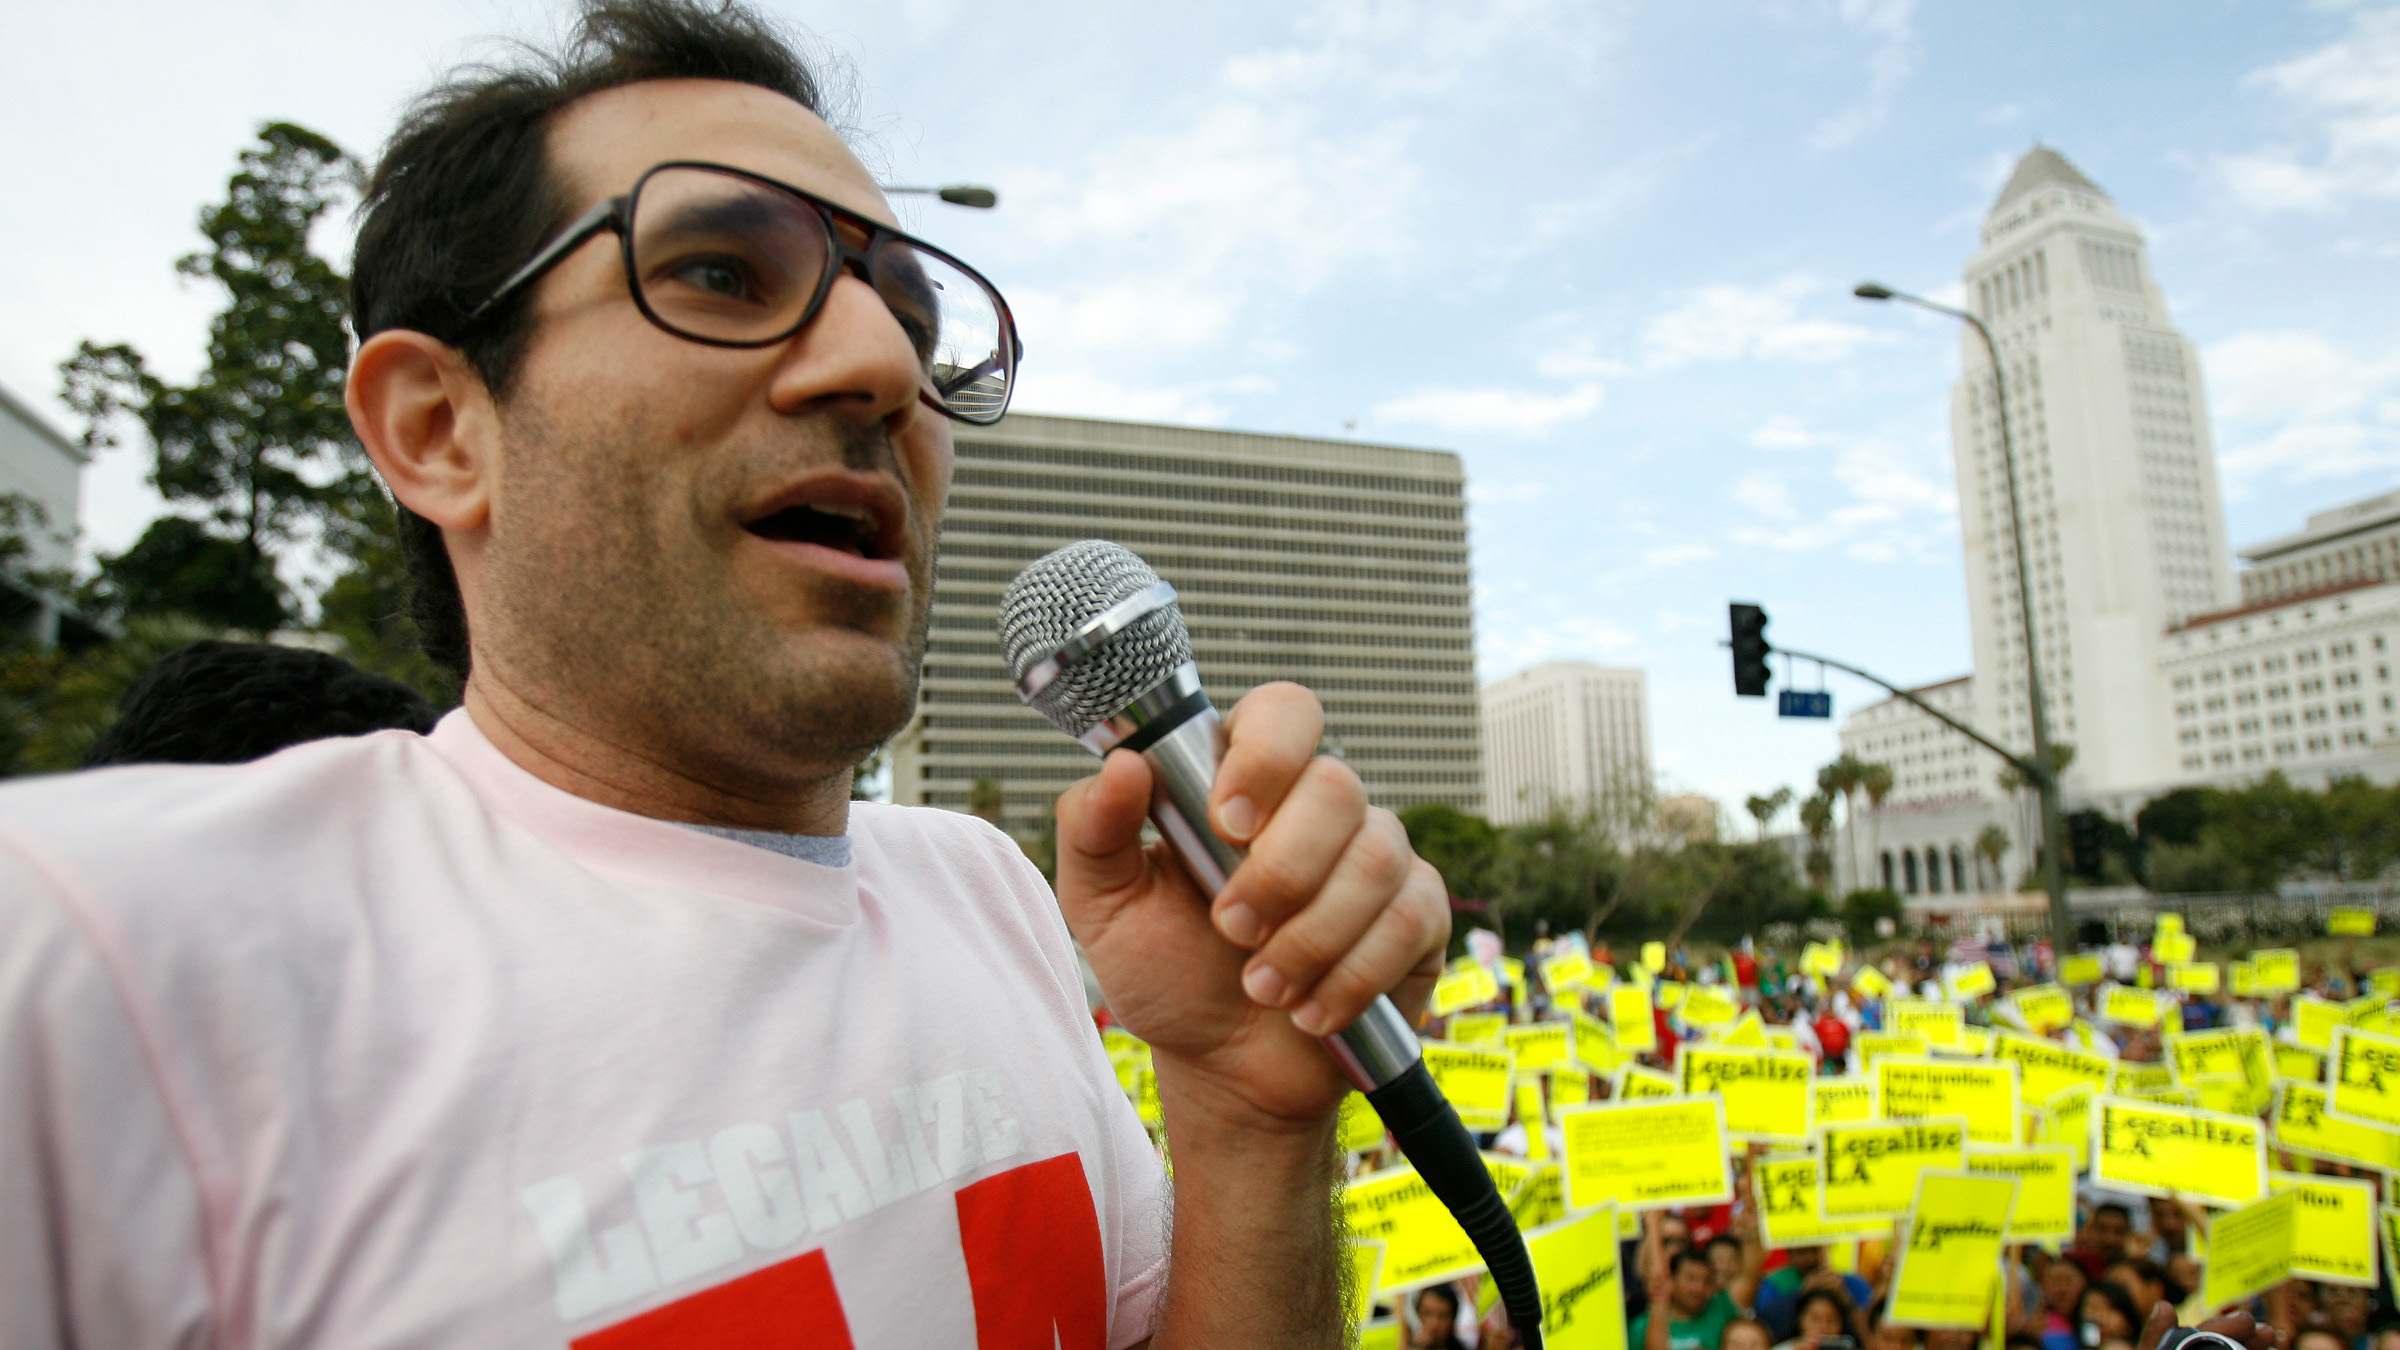 American Apparel owner Dov Charney speaks during a May Day rally protest march for immigrant rights, in downtown Los Angeles May 1, 2009. Groups of mostly Hispanic protesters waved flags and chanted in pro-immigration May Day rallies across the United States on Friday, but many of the demonstrations drew smaller numbers than in recent years.